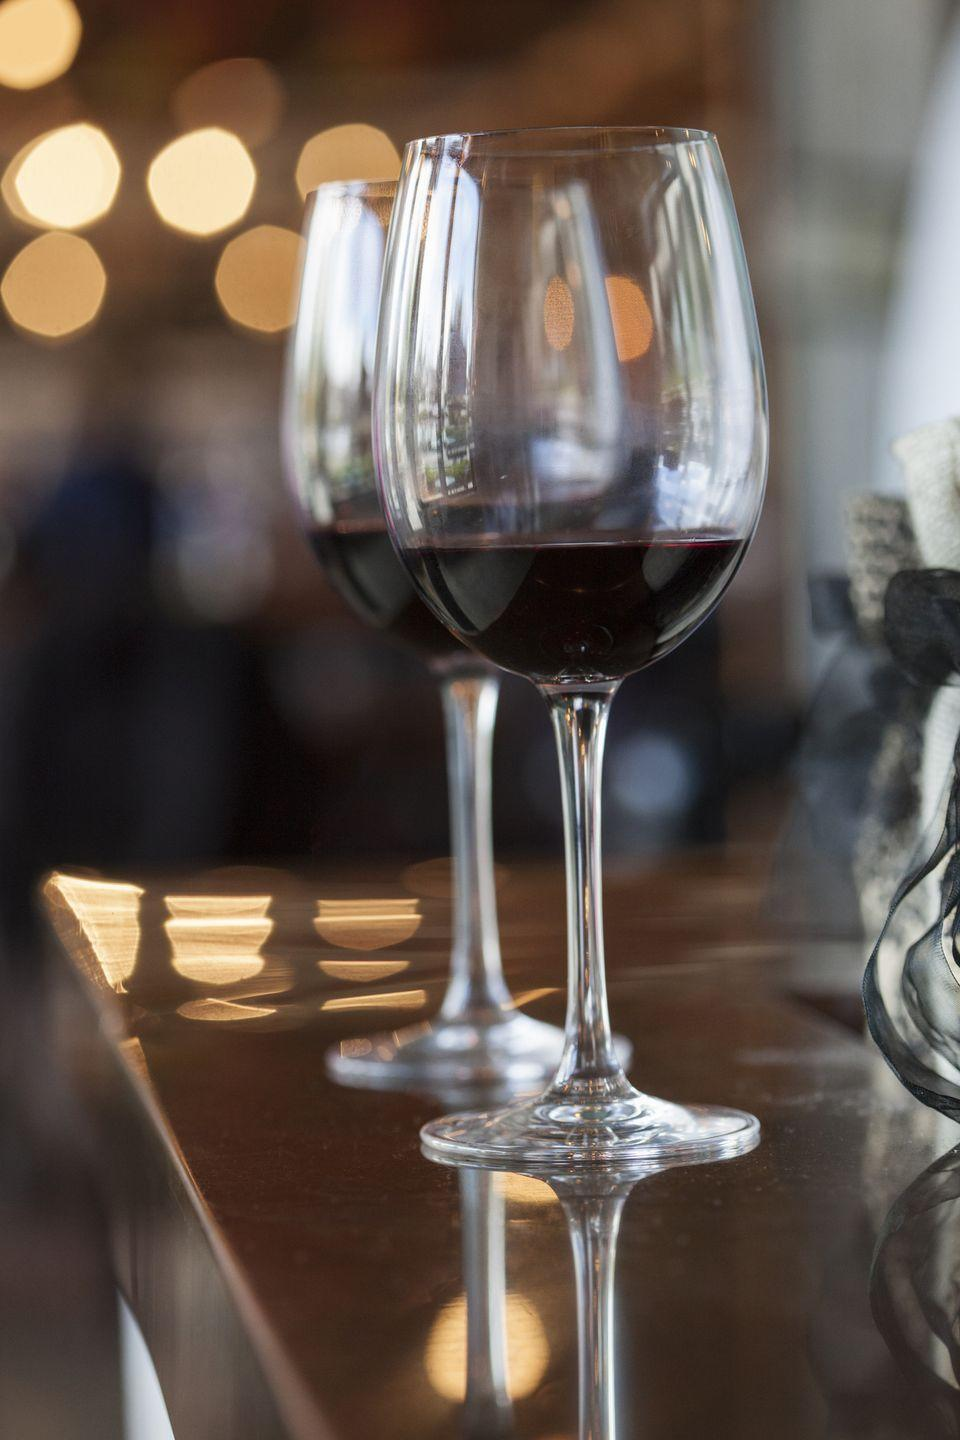 """<p>Cheers to Kentucky! In 1799, the <a href=""""http://mentalfloss.com/article/71751/25-fine-facts-about-kentucky"""" rel=""""nofollow noopener"""" target=""""_blank"""" data-ylk=""""slk:first commercial winery"""" class=""""link rapid-noclick-resp"""">first commercial winery</a> in the United States was established near Lexington. And yes, you can still enjoy wine produced by the winery (now named """"First Vineyard."""") It's even maintained by a descendant of the original shareholders of the winery.  </p>"""